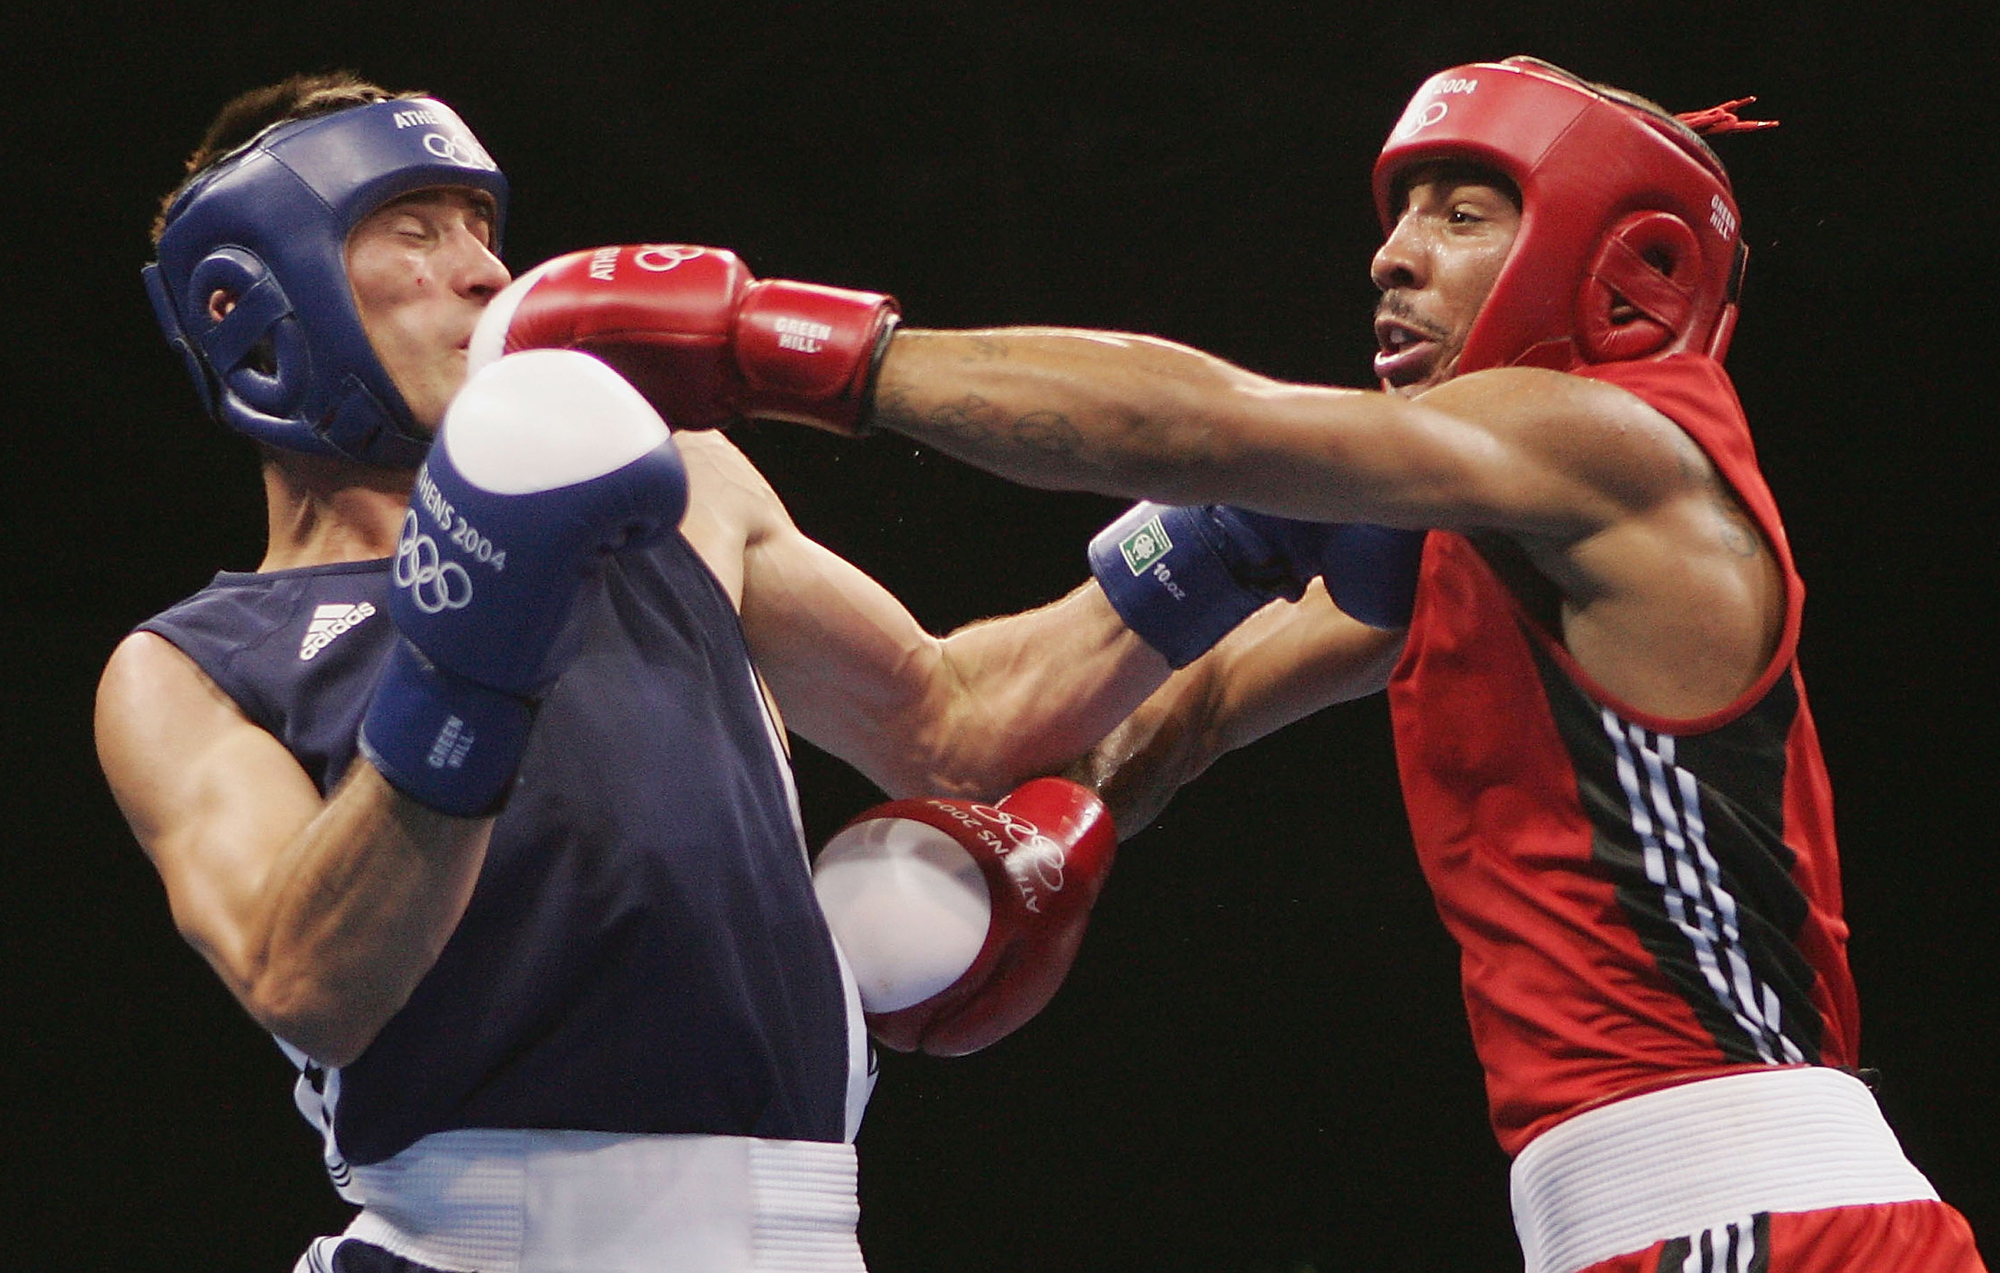 Andre Ward of the USA catches Magomed Aripgadjiev of Belarus (Blue) with a left during the men's boxing 81 kg final bout on August 29, 2004 during the Athens 2004 Summer Olympic Games at Peristeri Olympic Boxing Hall in Athens, Greece.